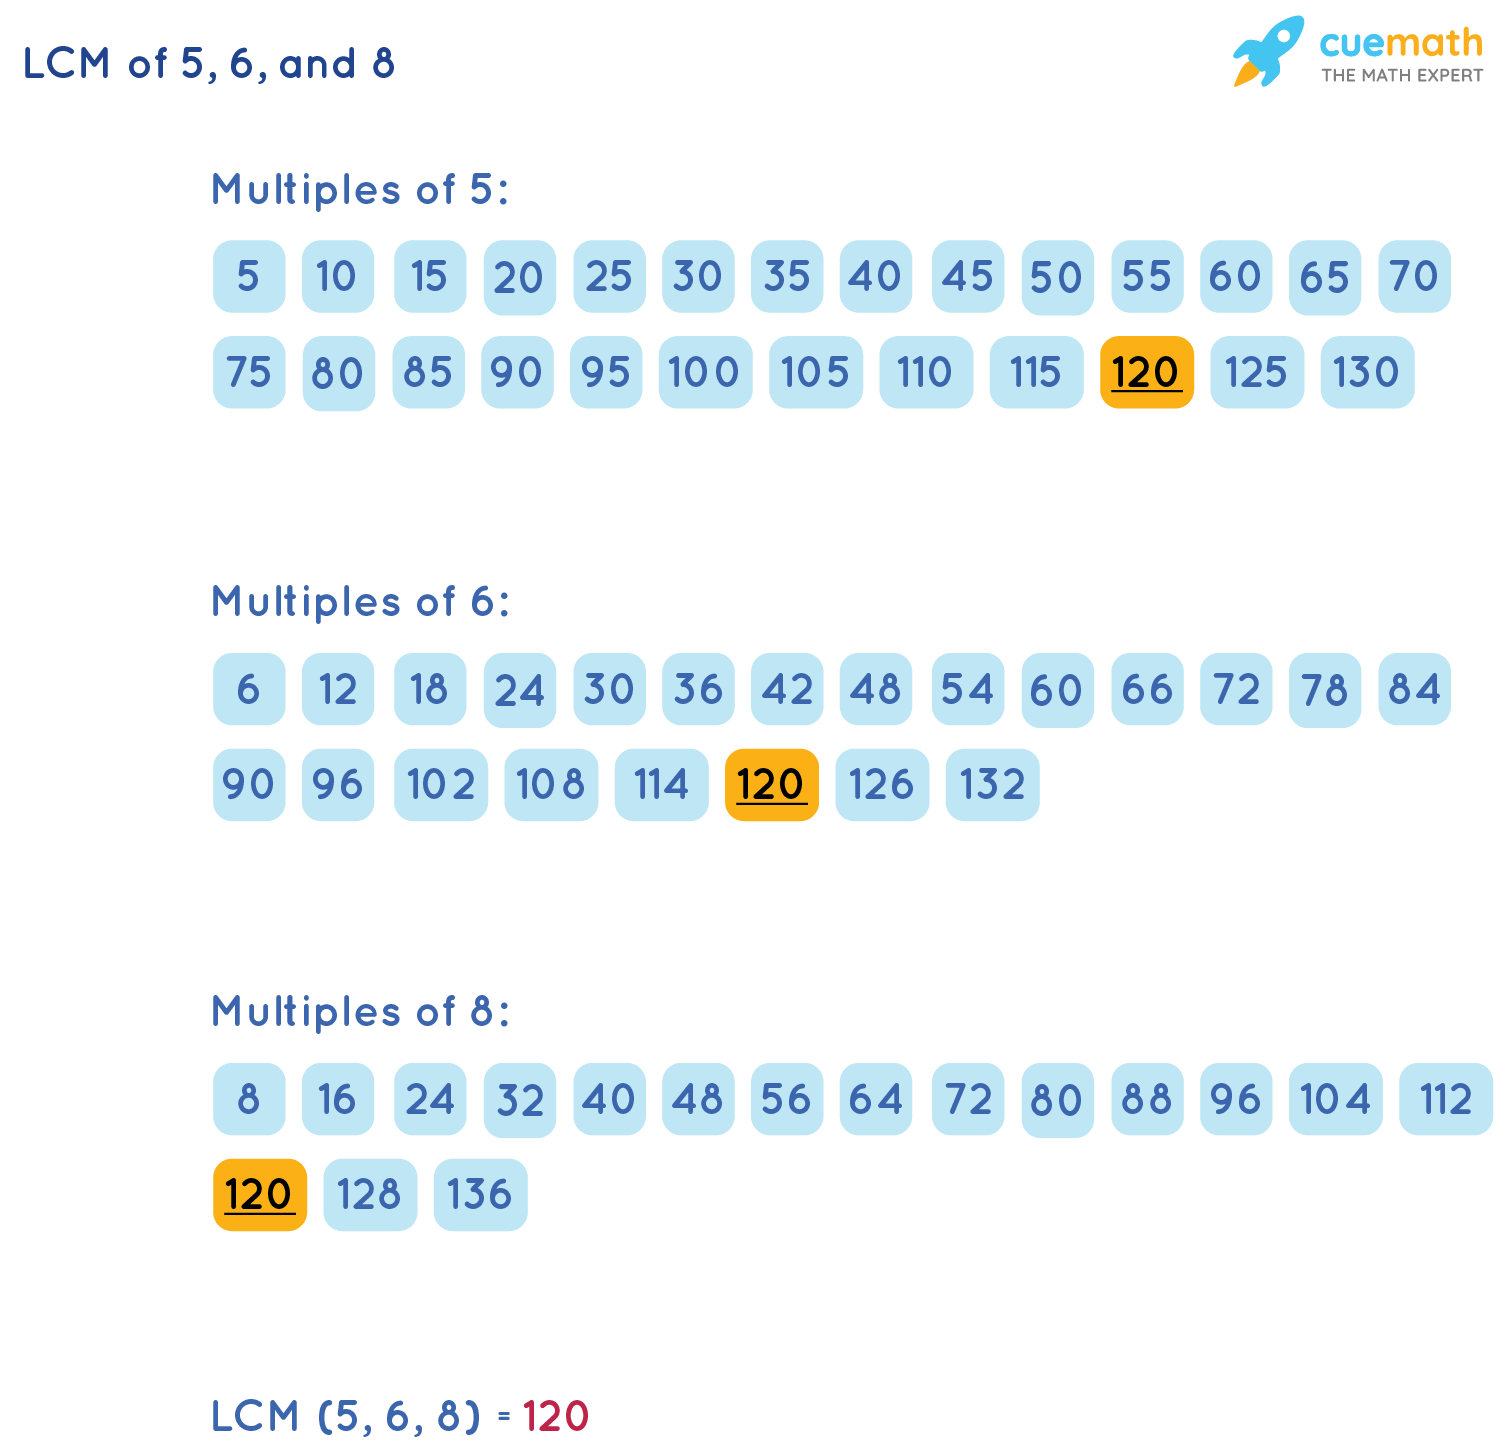 LCM of 5, 6, and 8 by Listing Method